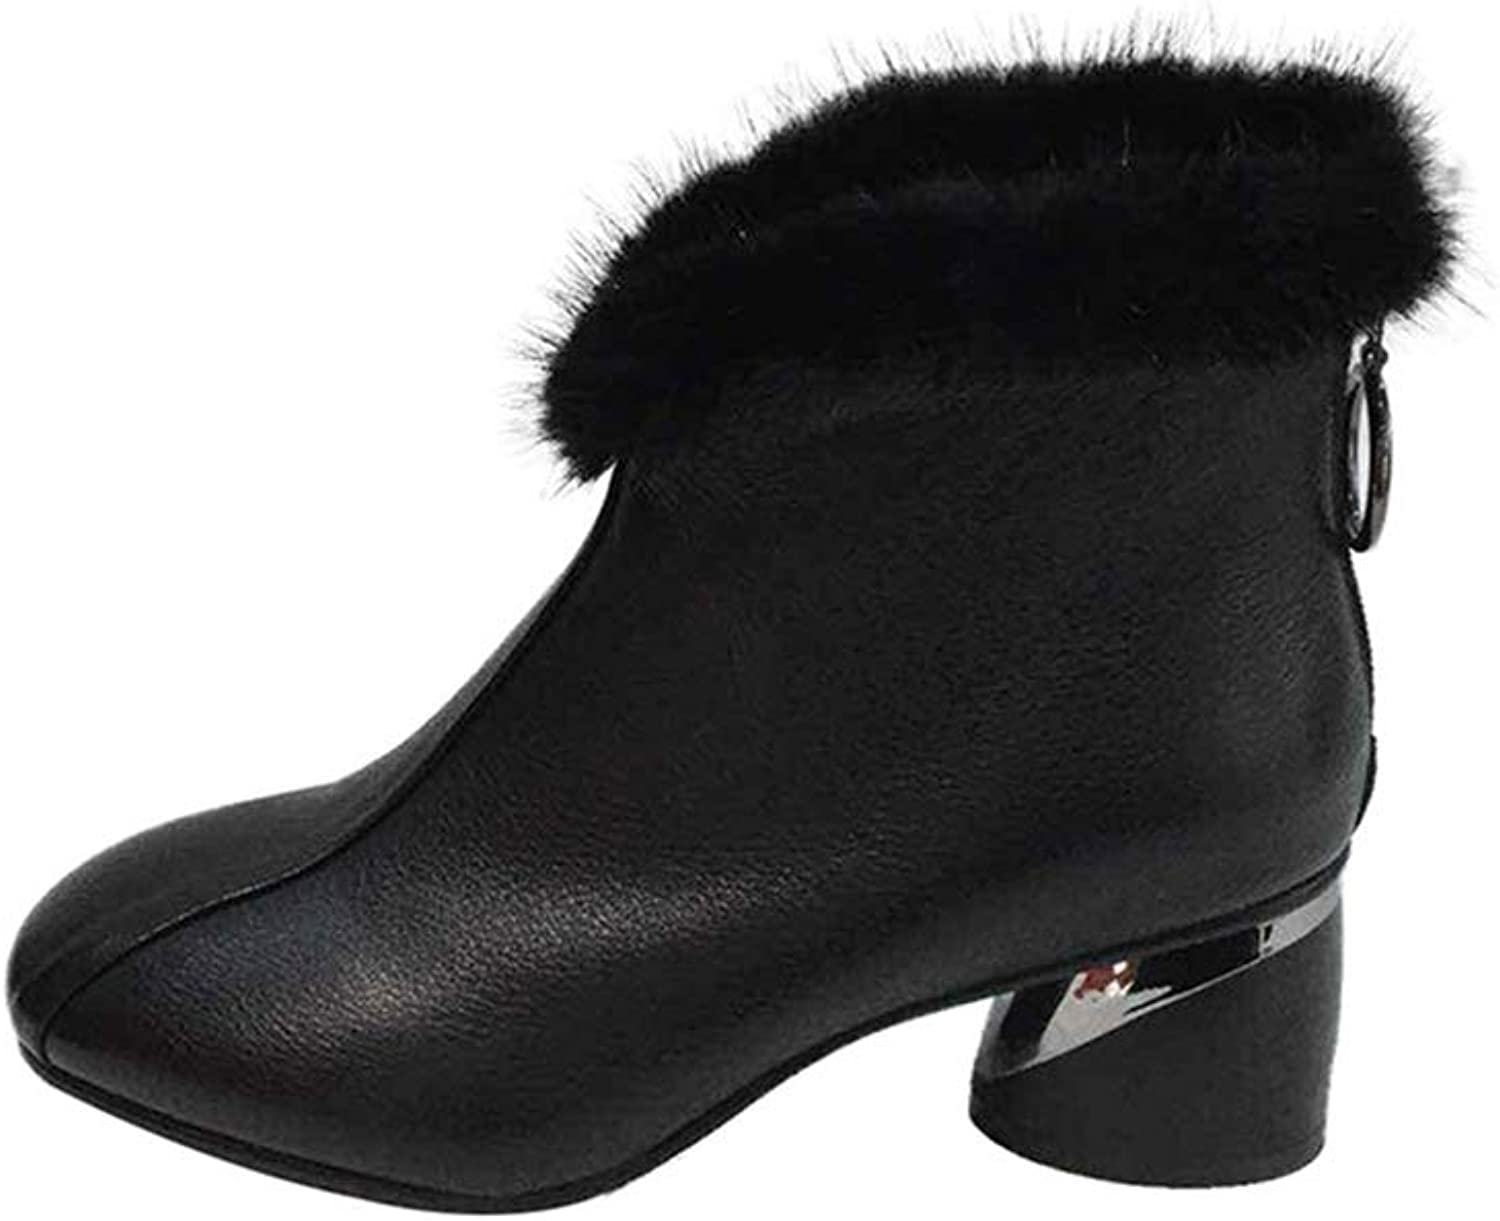 Exing Womens's Boots, Fall Winter Leather Fashion Boots Plus Velvet Increase Heig